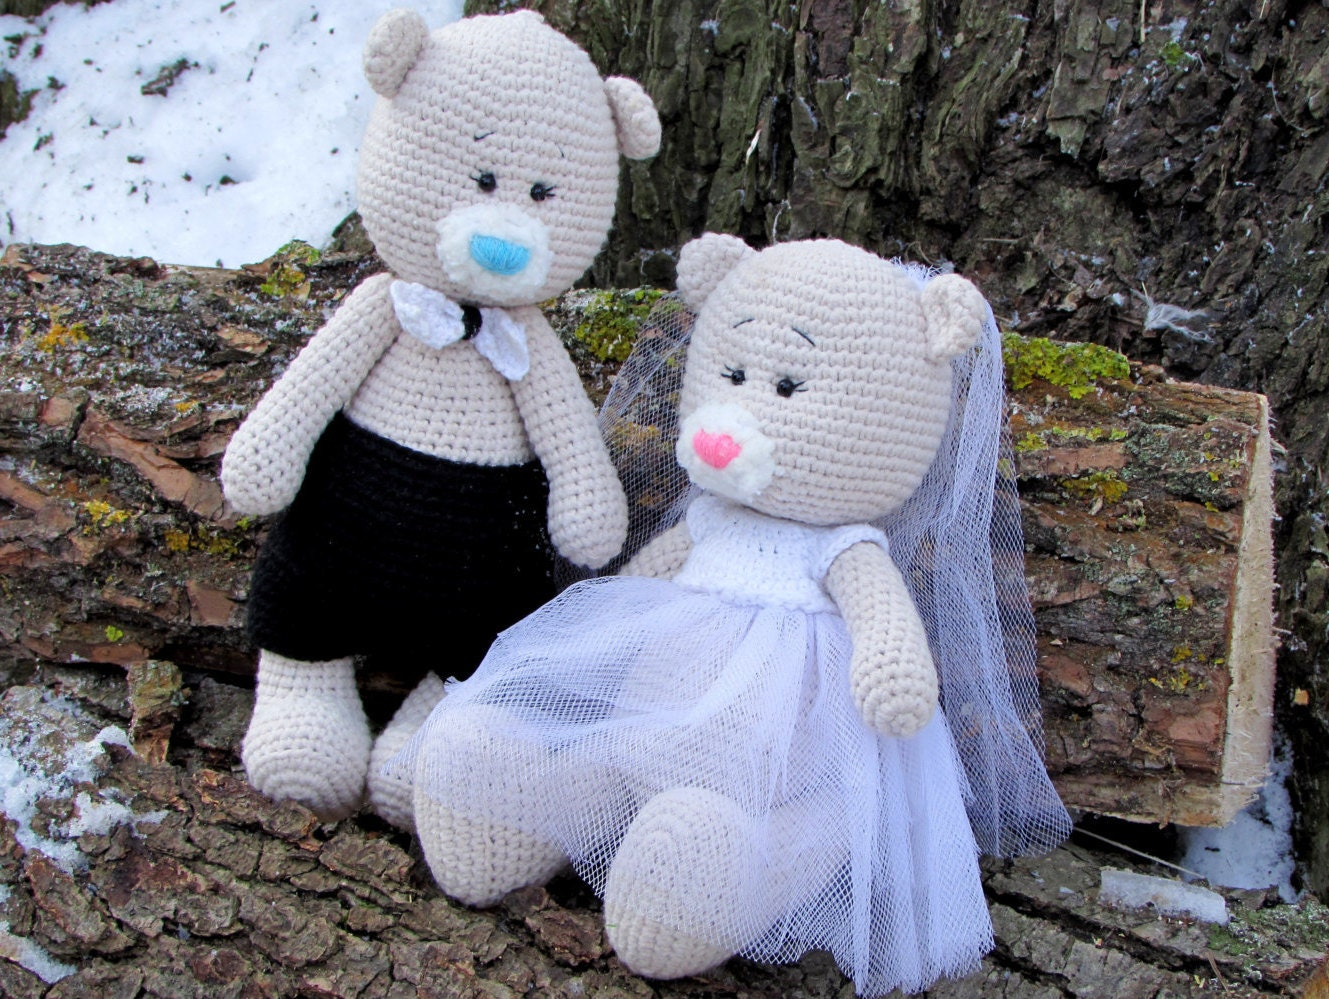 Crochet Wedding Gift: Crochet Wedding Bears Wedding Gifts Bride And Groom Teddy